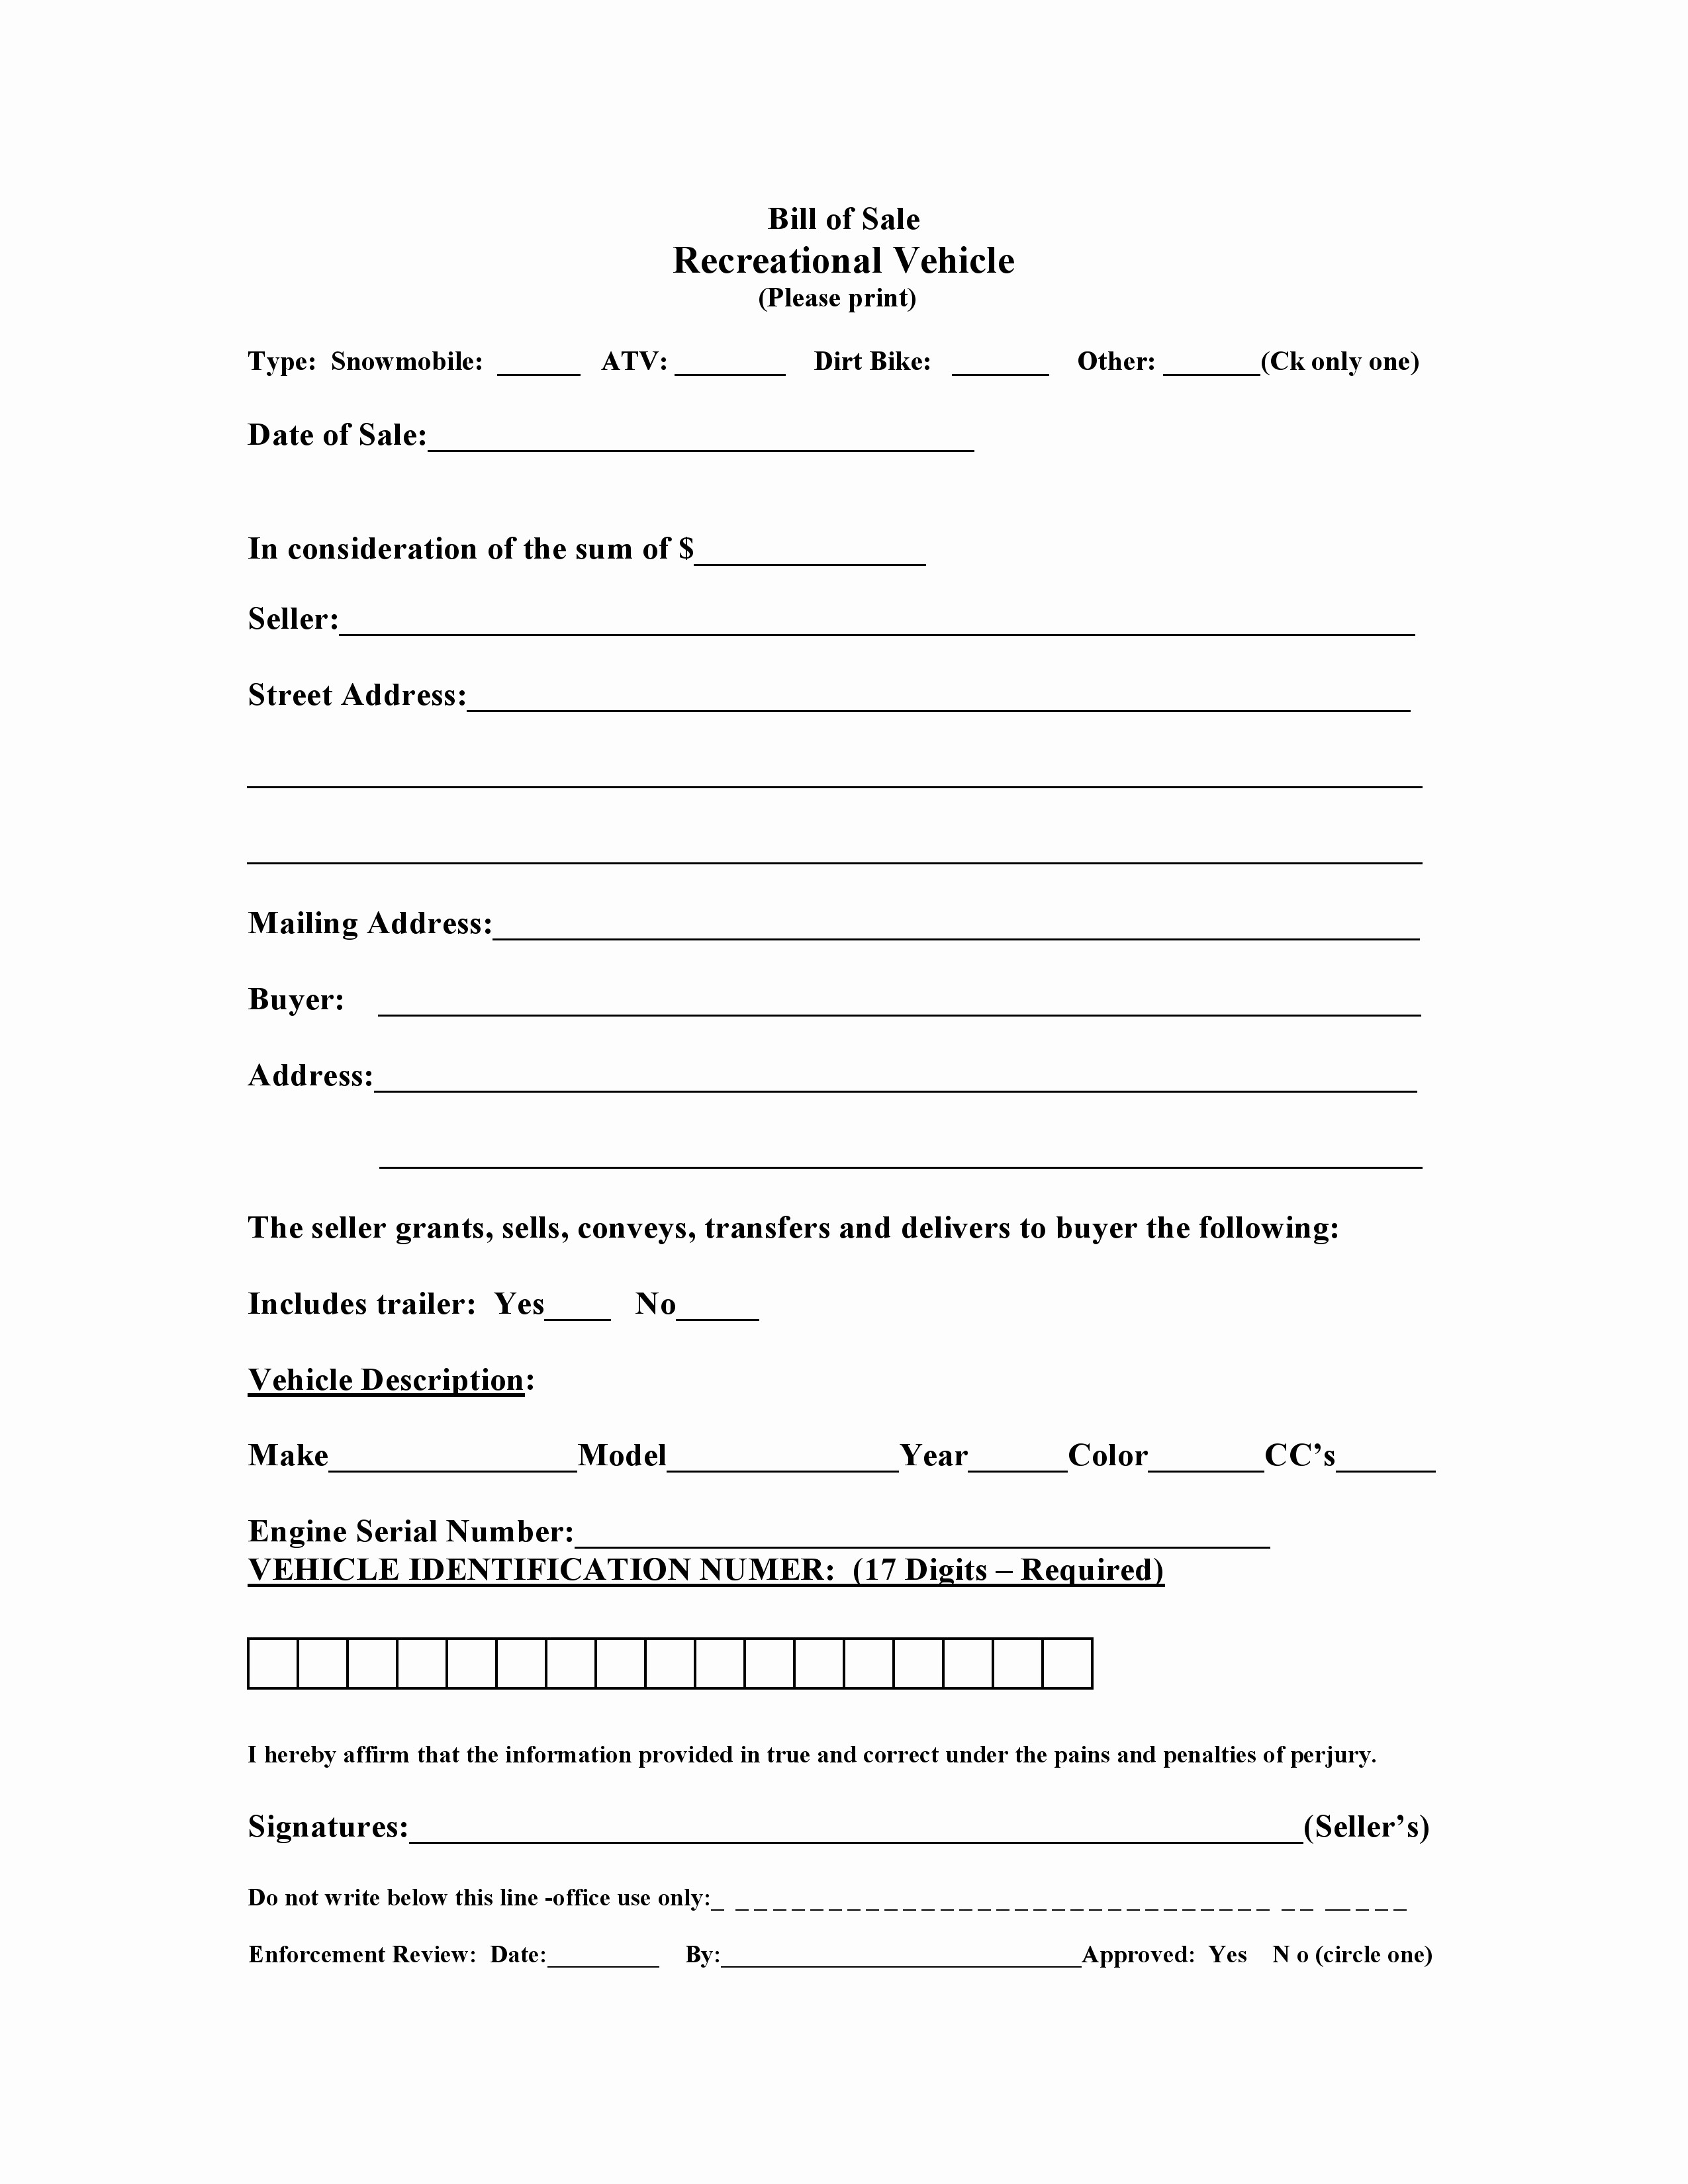 Free forms Bill Of Sale Awesome Free Massachusetts Recreational Vessel Vehicle Bill Of